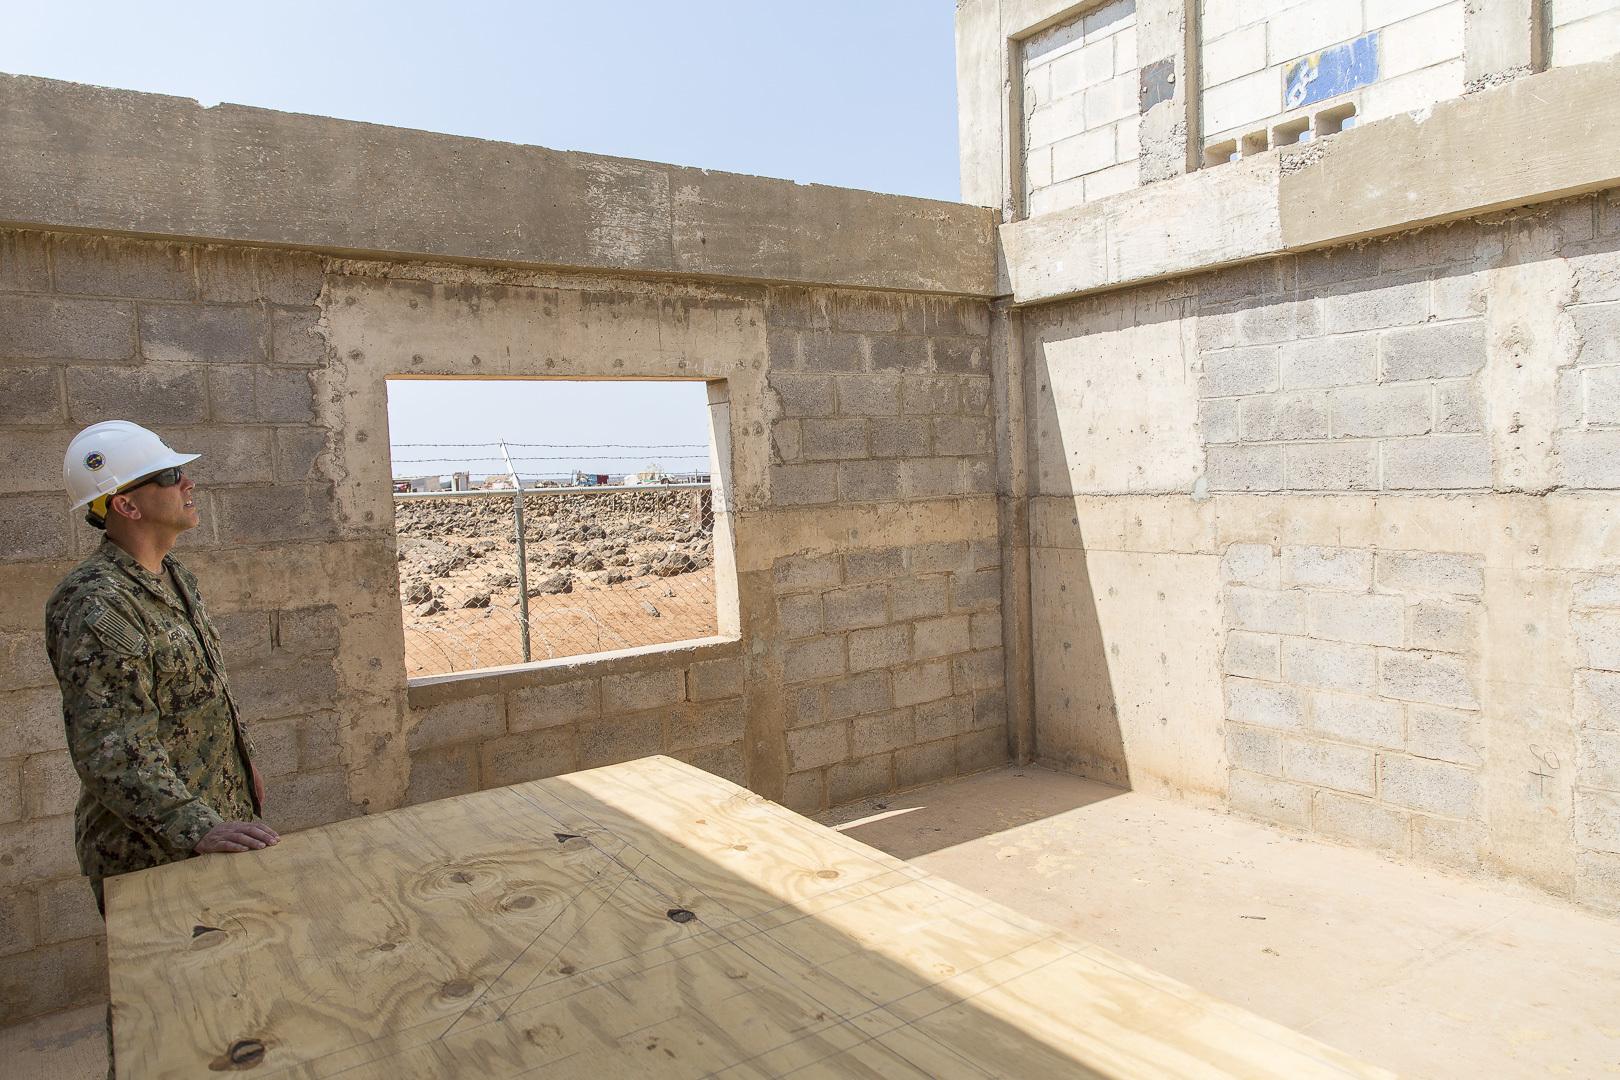 U.S. Navy Civil Engineer Corp Cmdr. Michael Meno, Naval Mobile Construction Battalion 1 commander, observes construction of a nursery in Ali Oune, Djibouti, Sept. 19, 2018. Seabees with NMCB 1, Detachment-Horn of Africa are building a medical facility in Ali Oune in support of the Ministry of Health for Djibouti. (U.S. Air National Guard photo by Master Sgt. Andrew Sinclair)